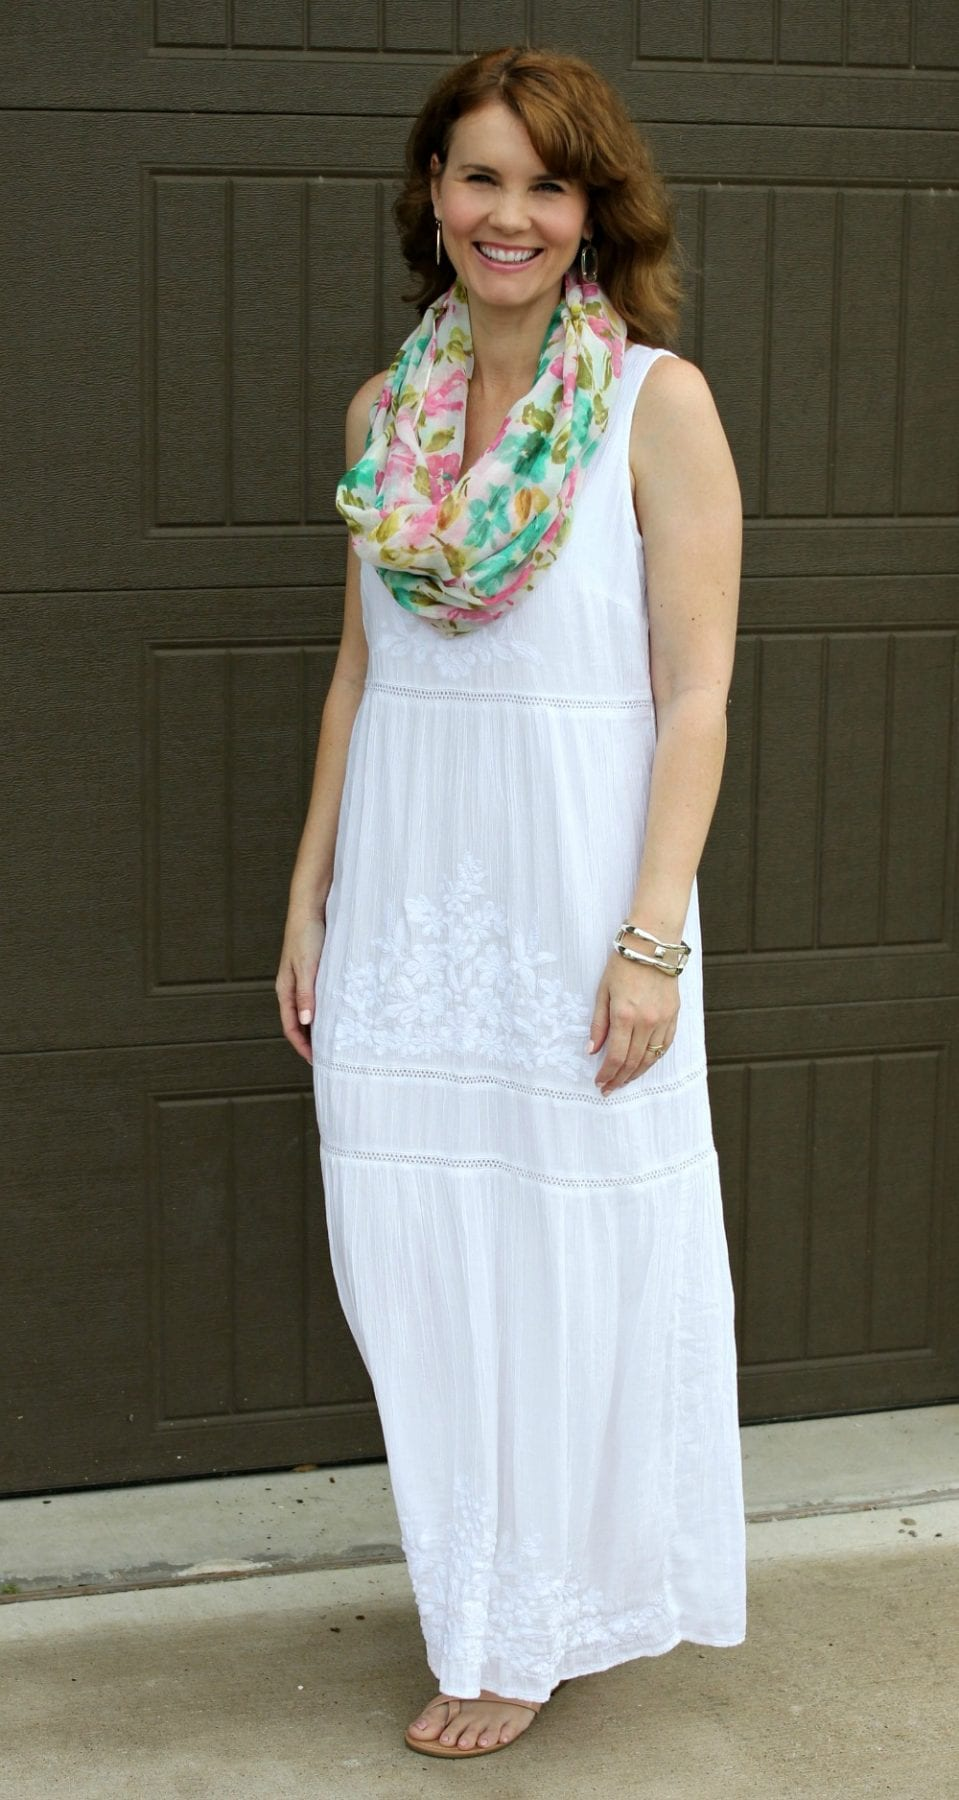 White Summer Dress - wear this to a casual summer wedding, event or strolling on the beach. The dress is lined, has a beautiful embroidered design and is so comfortable. Click through to see where you can purchase it.